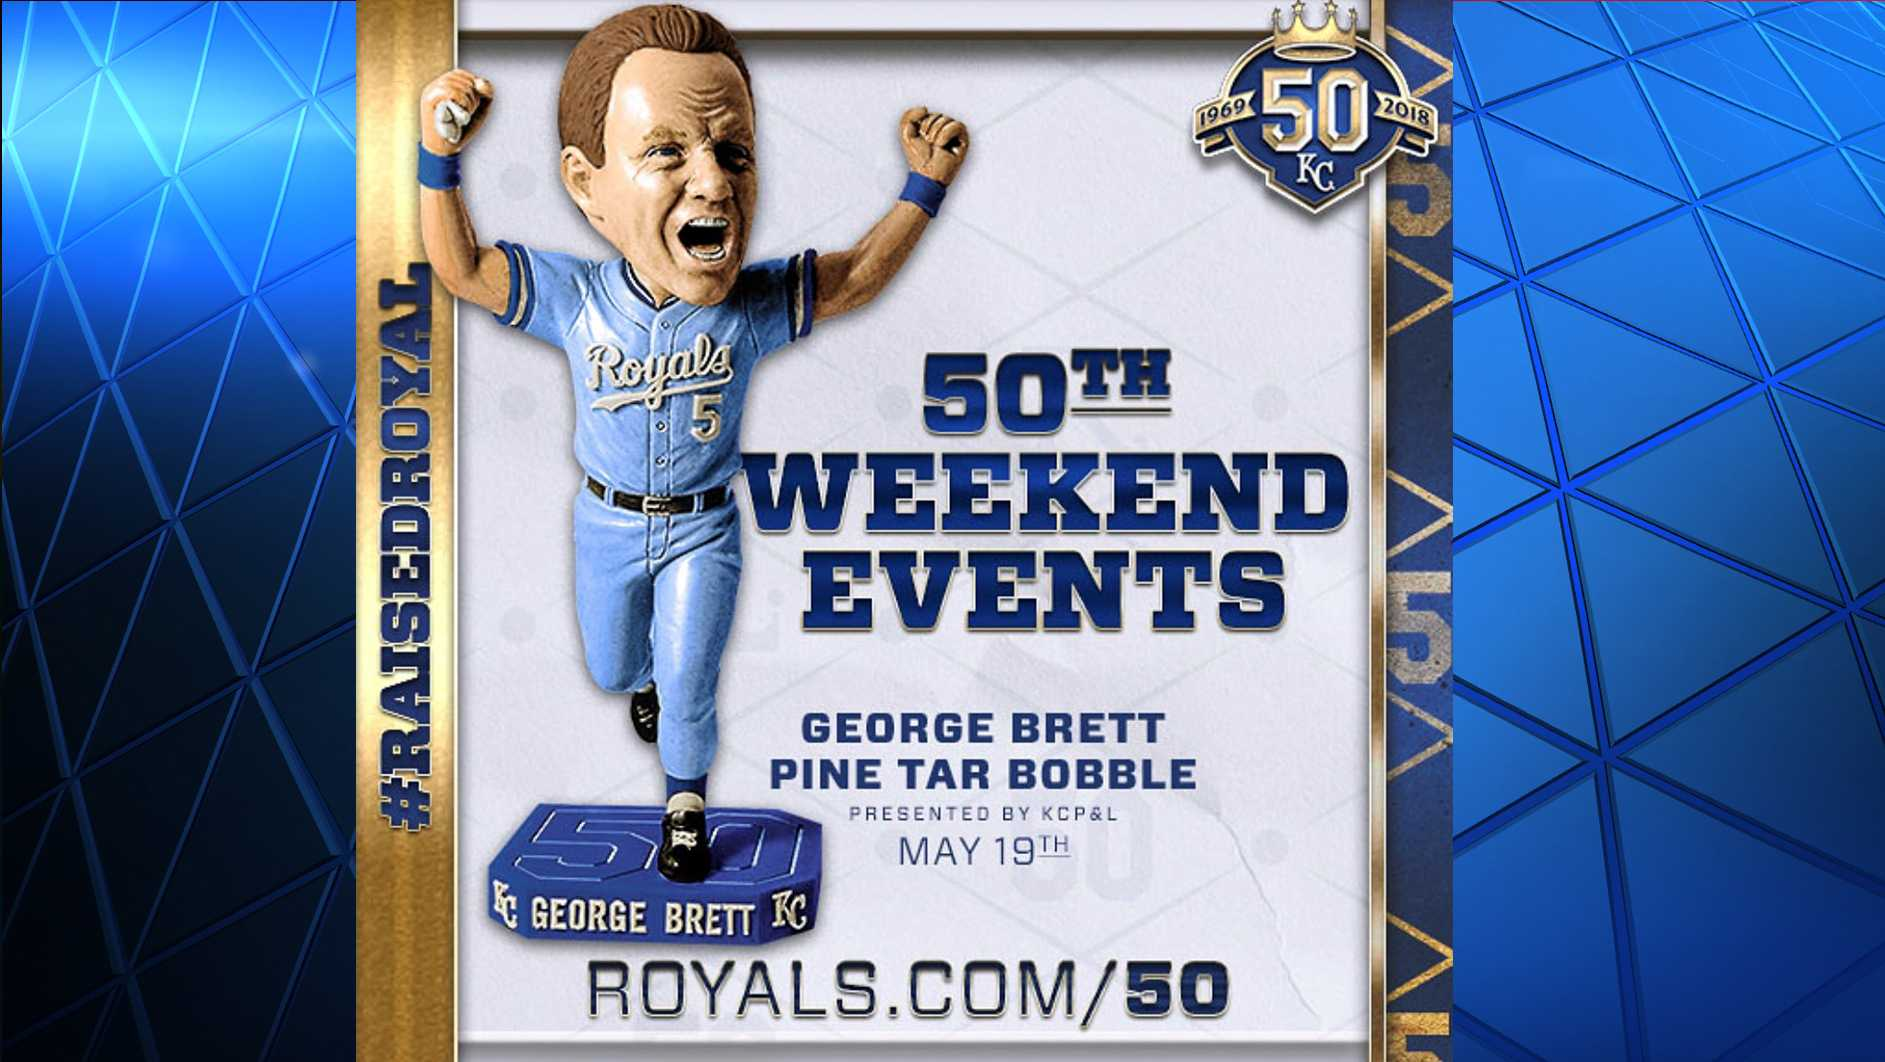 Royals Promotional Schedule May 3, ; Promotional Royals Games- Your Guide to Giveaways April 19, ; Royals Promotional Schedule February 12, ; Kansas City Royals Schedule January 8, ; The Journey of the World Series Champions October 5,